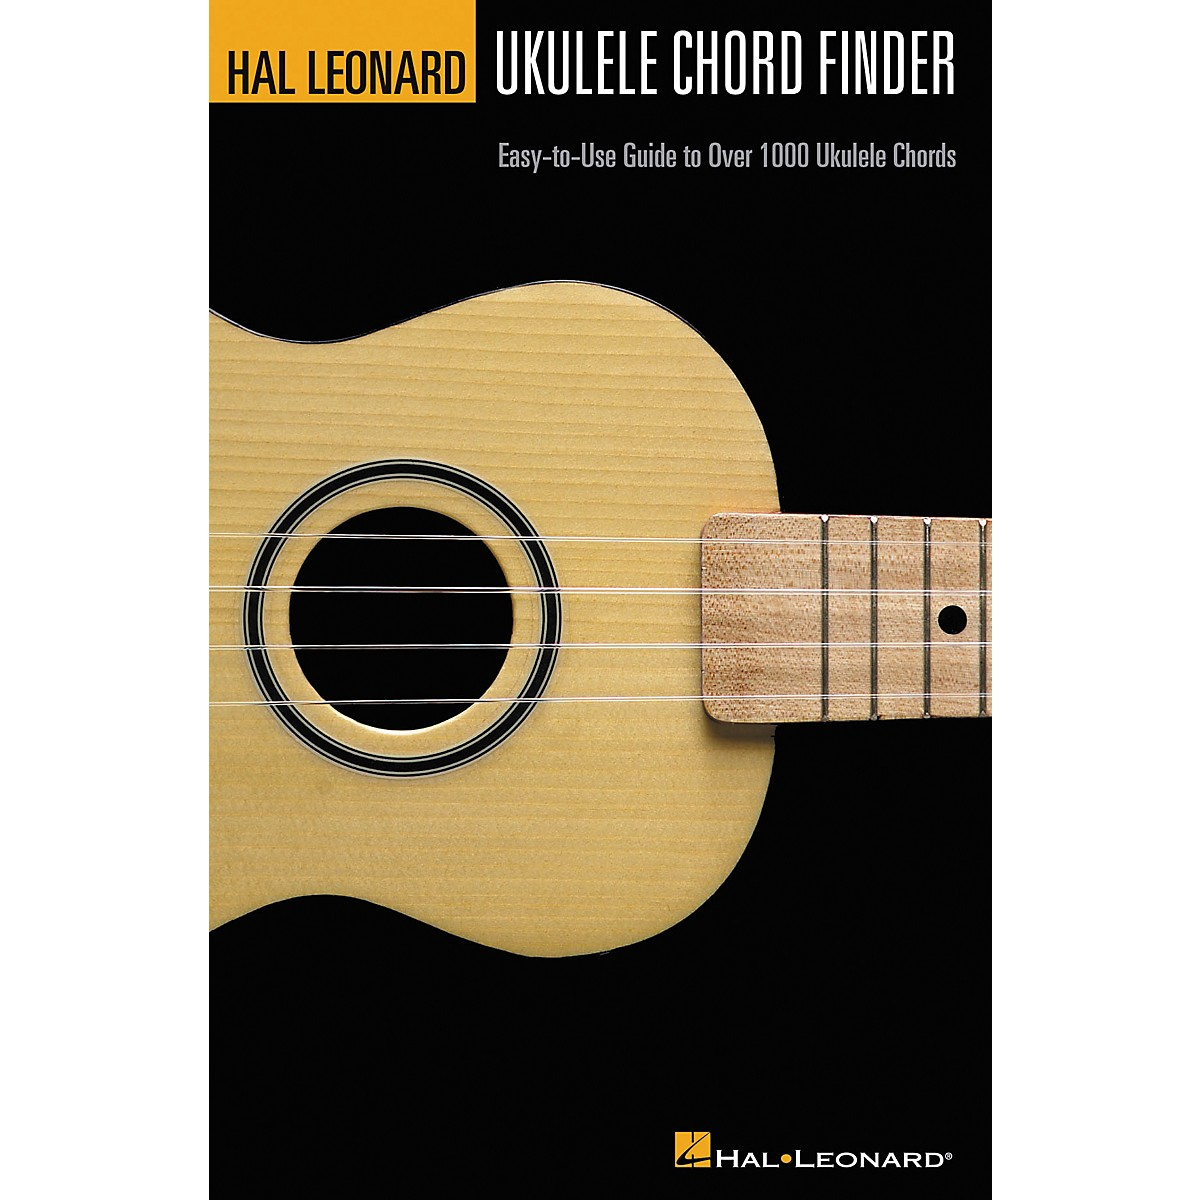 Hal Leonard Ukulele Chord Finder (Book)